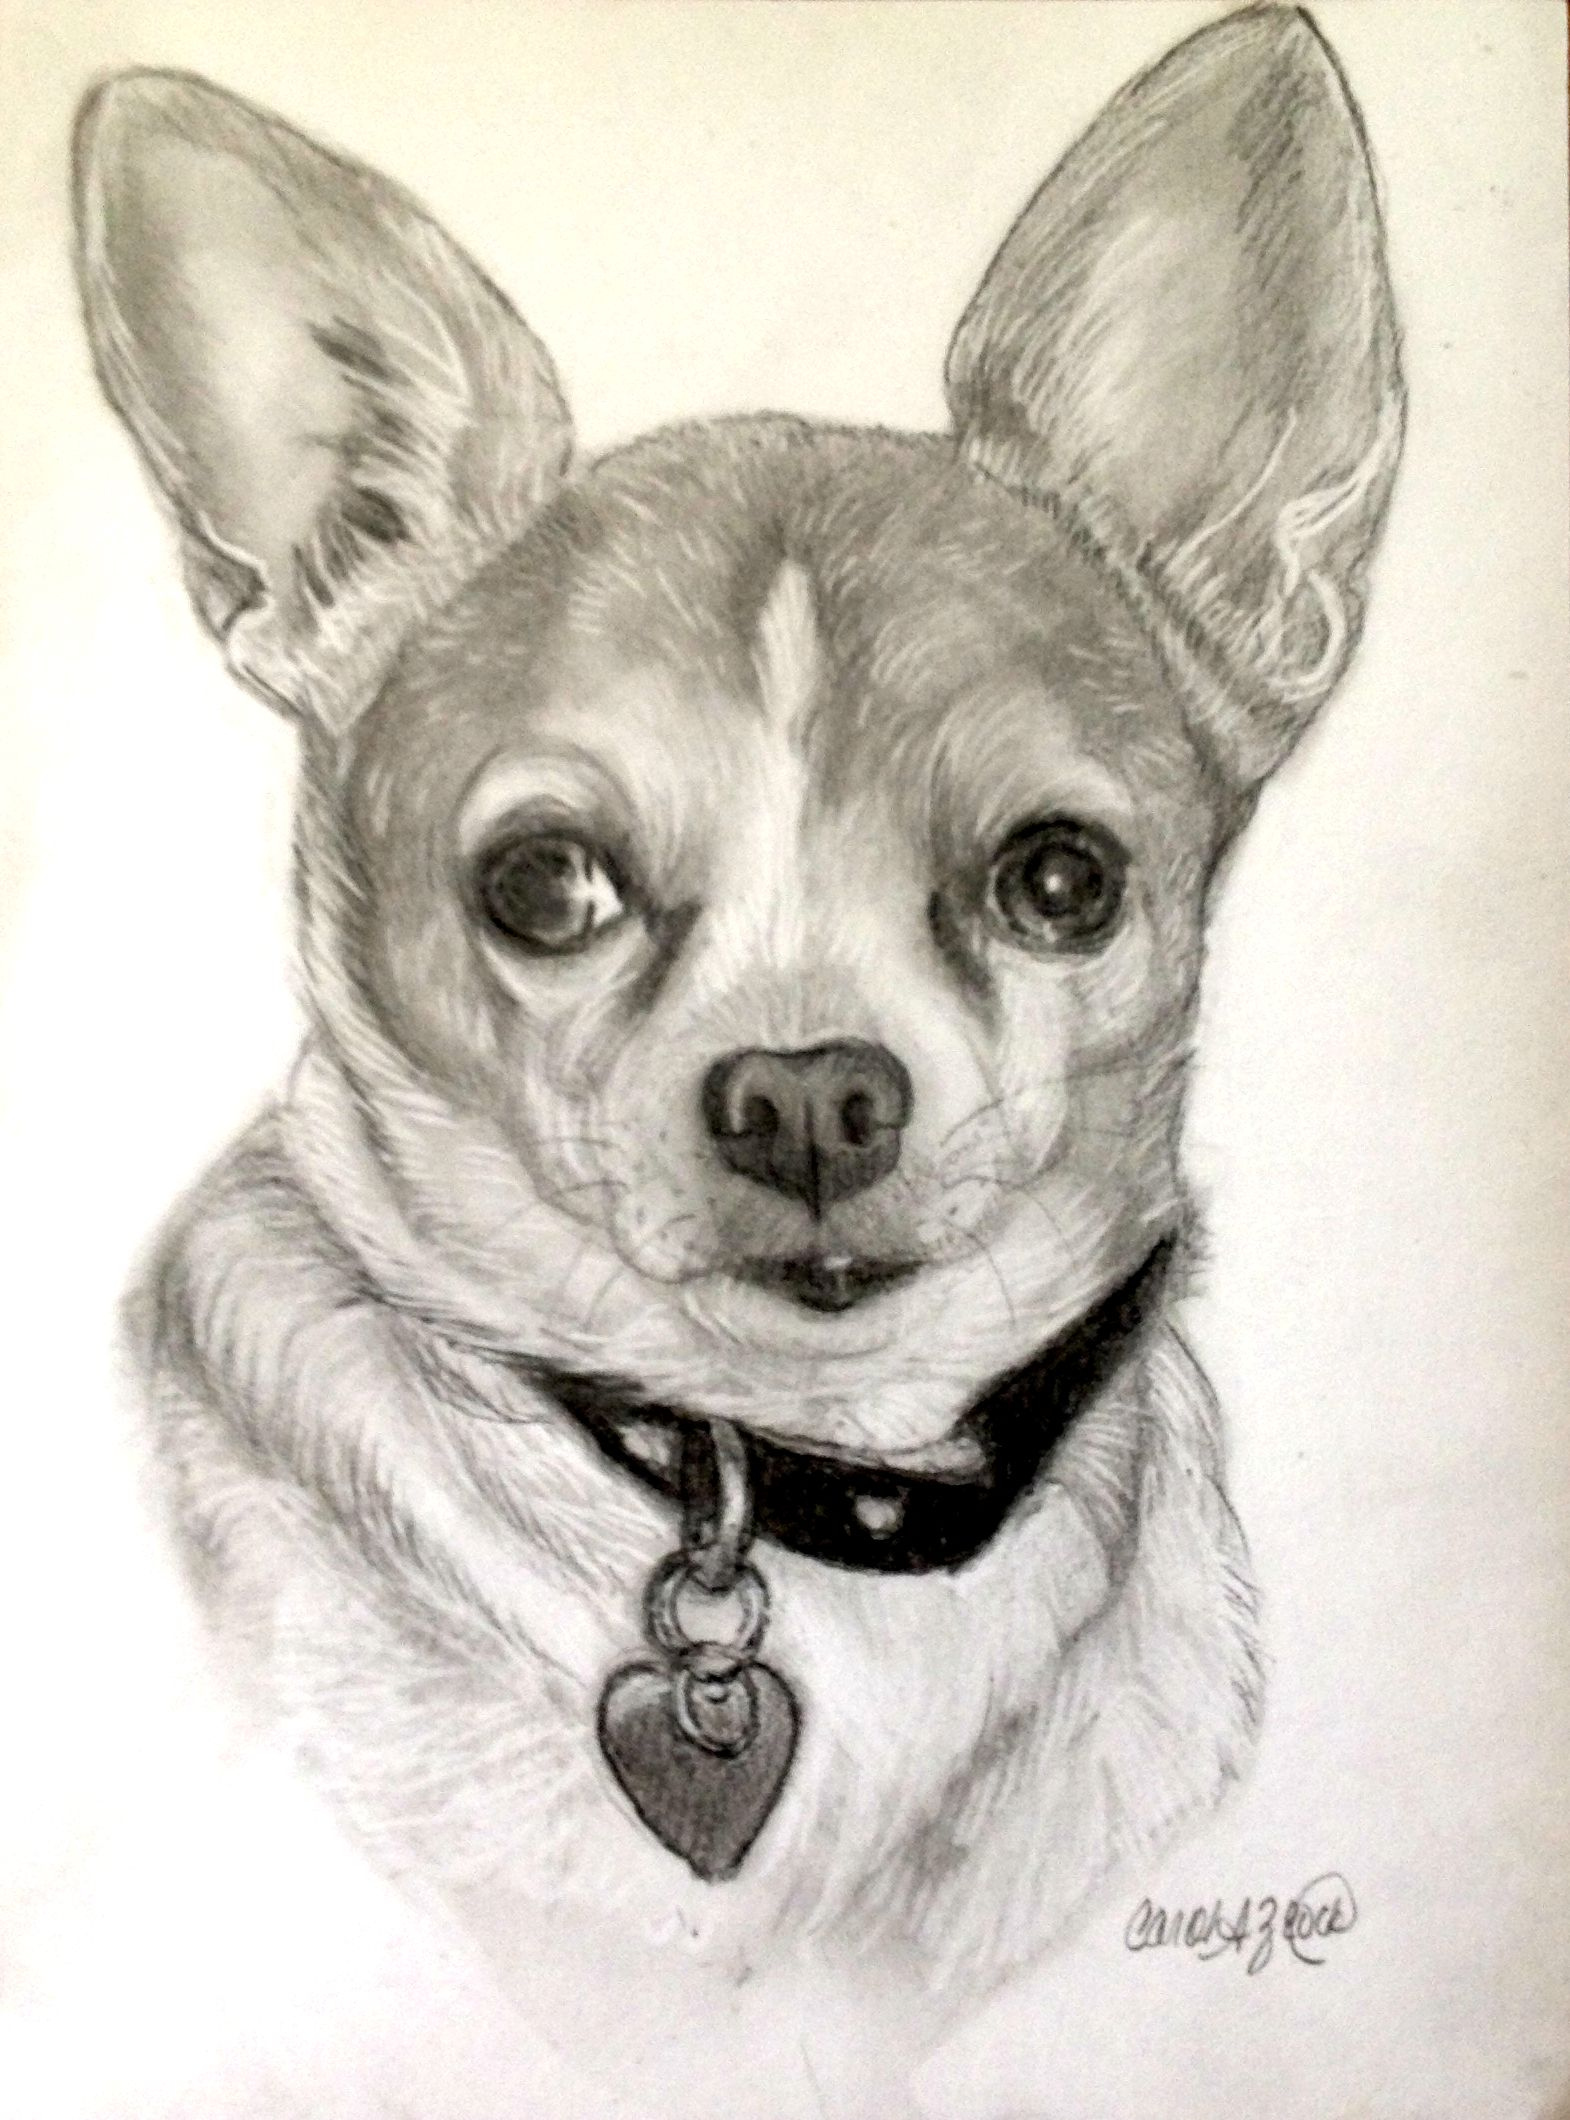 Chihuahua Commission Done In Graphite And Charcoal Animal Photography Chihuahua Chihuahua Dogs [ 2120 x 1570 Pixel ]